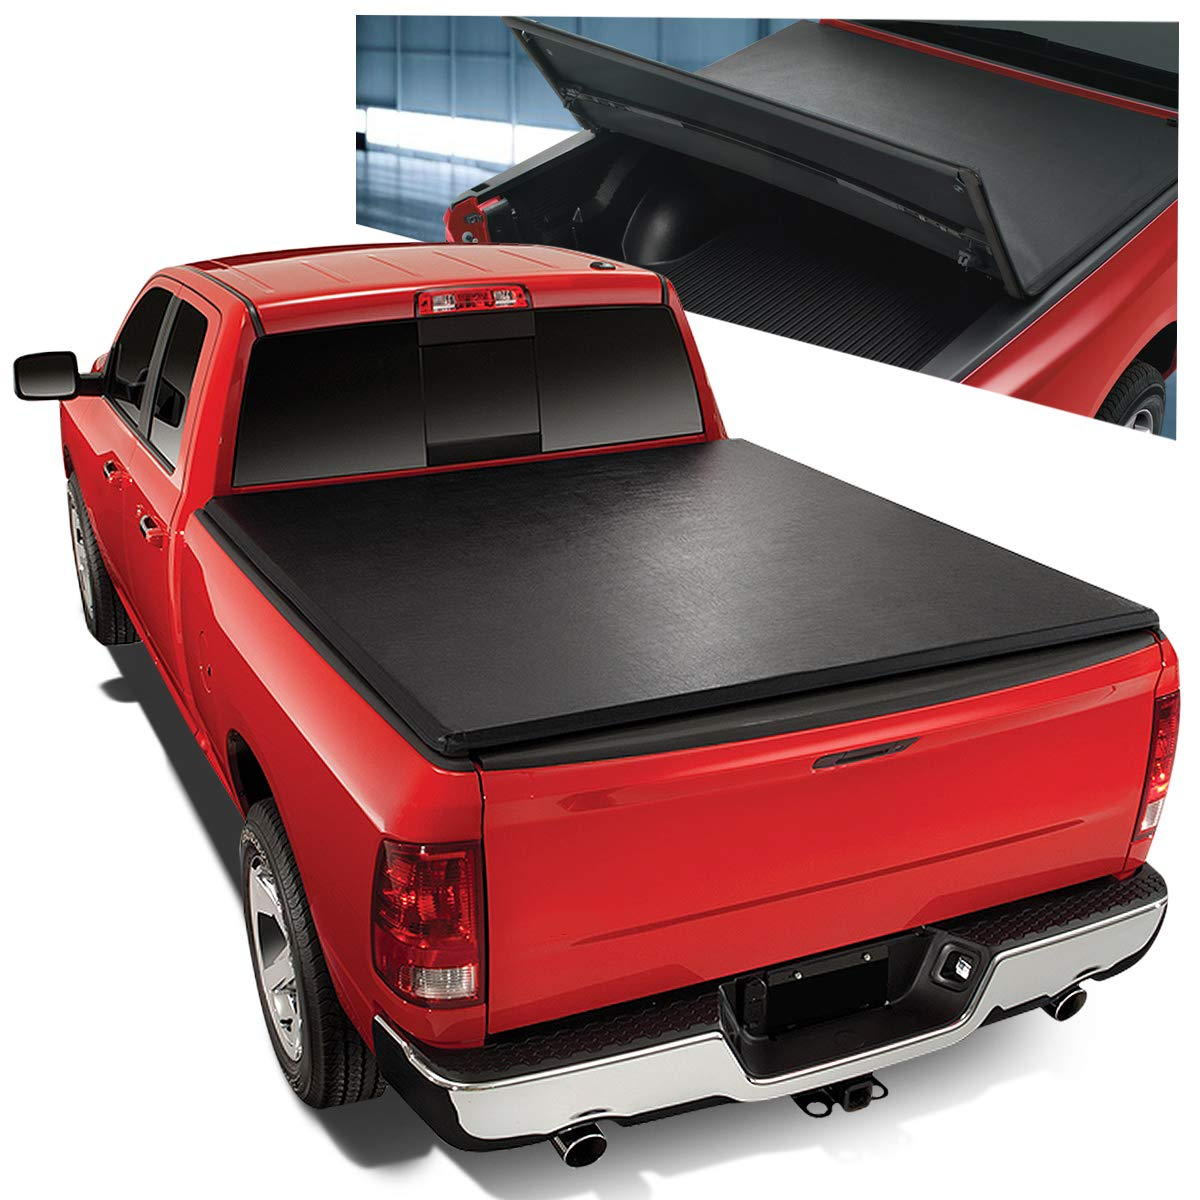 Tri Fold Adjustable Soft Top Trunk Tonneau Cover For Ford F150 Truck 8 Ft Bed Fleetside 04 14 Buy Online In Botswana At Desertcart Productid 140582935